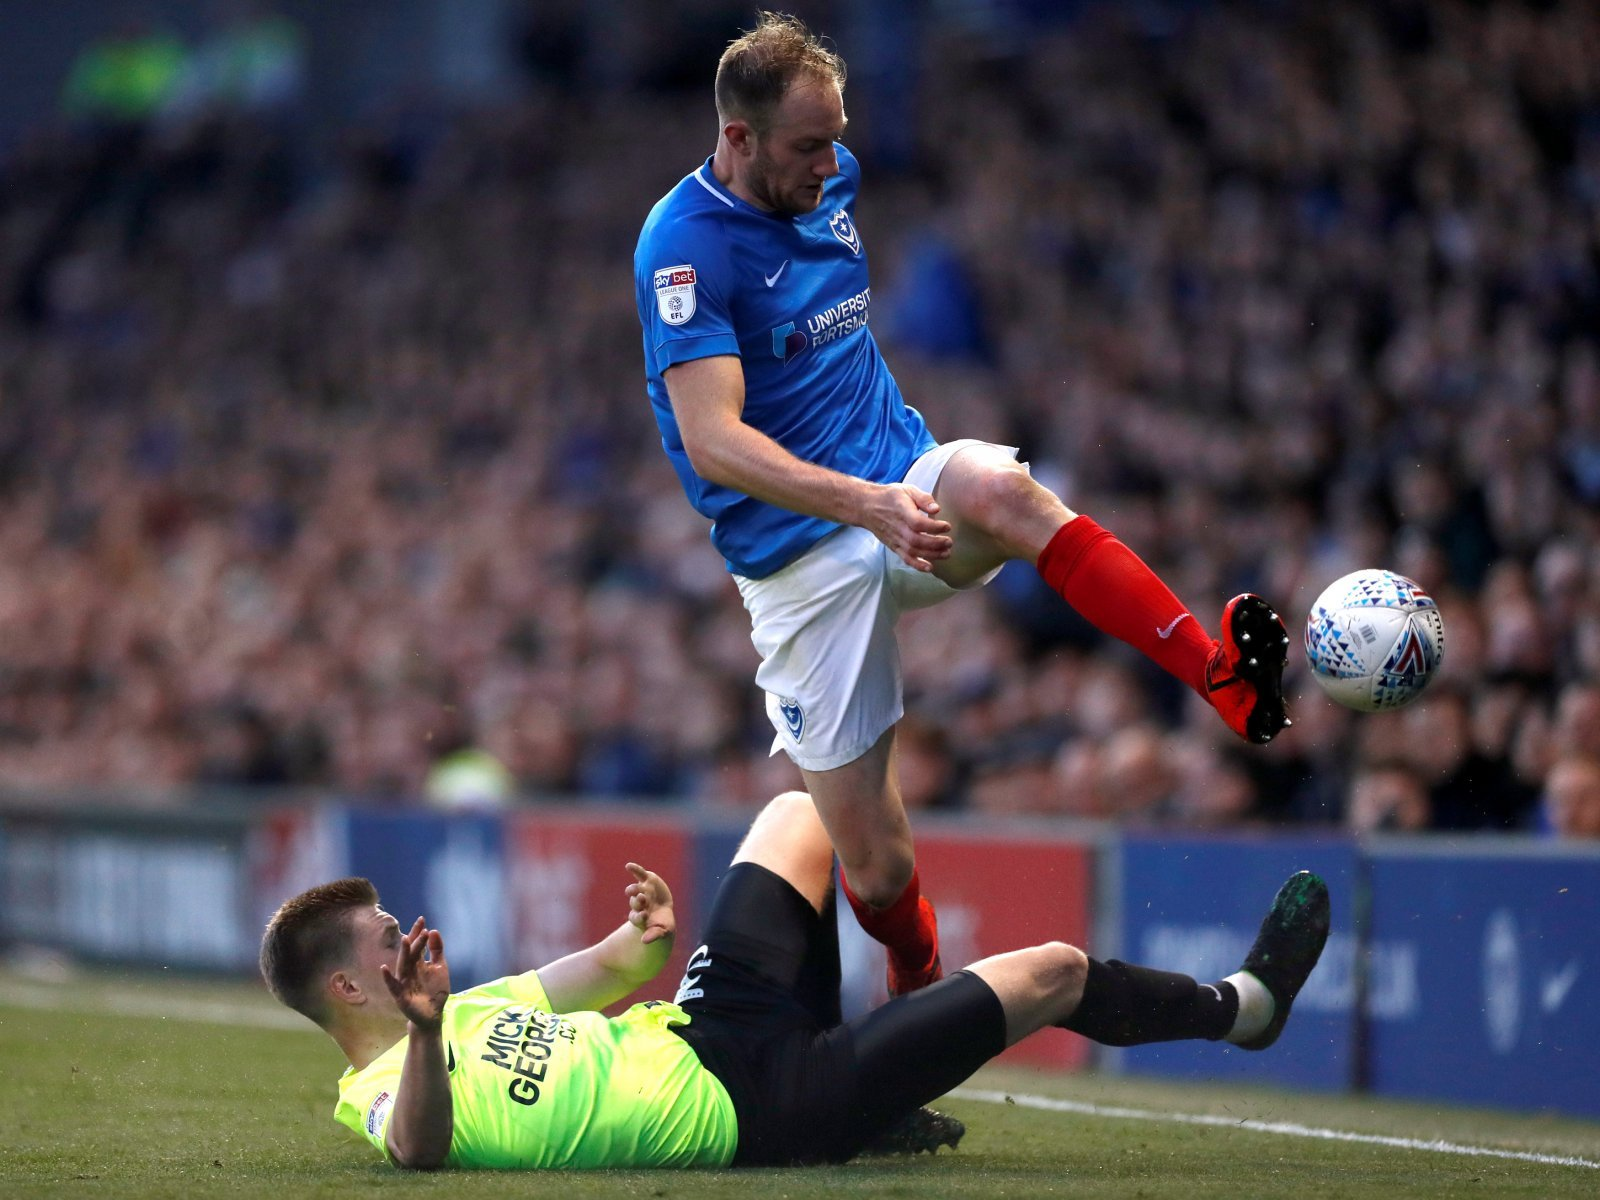 Profit Players: Matt Clarke was signed by Portsmouth for free and sold for millions